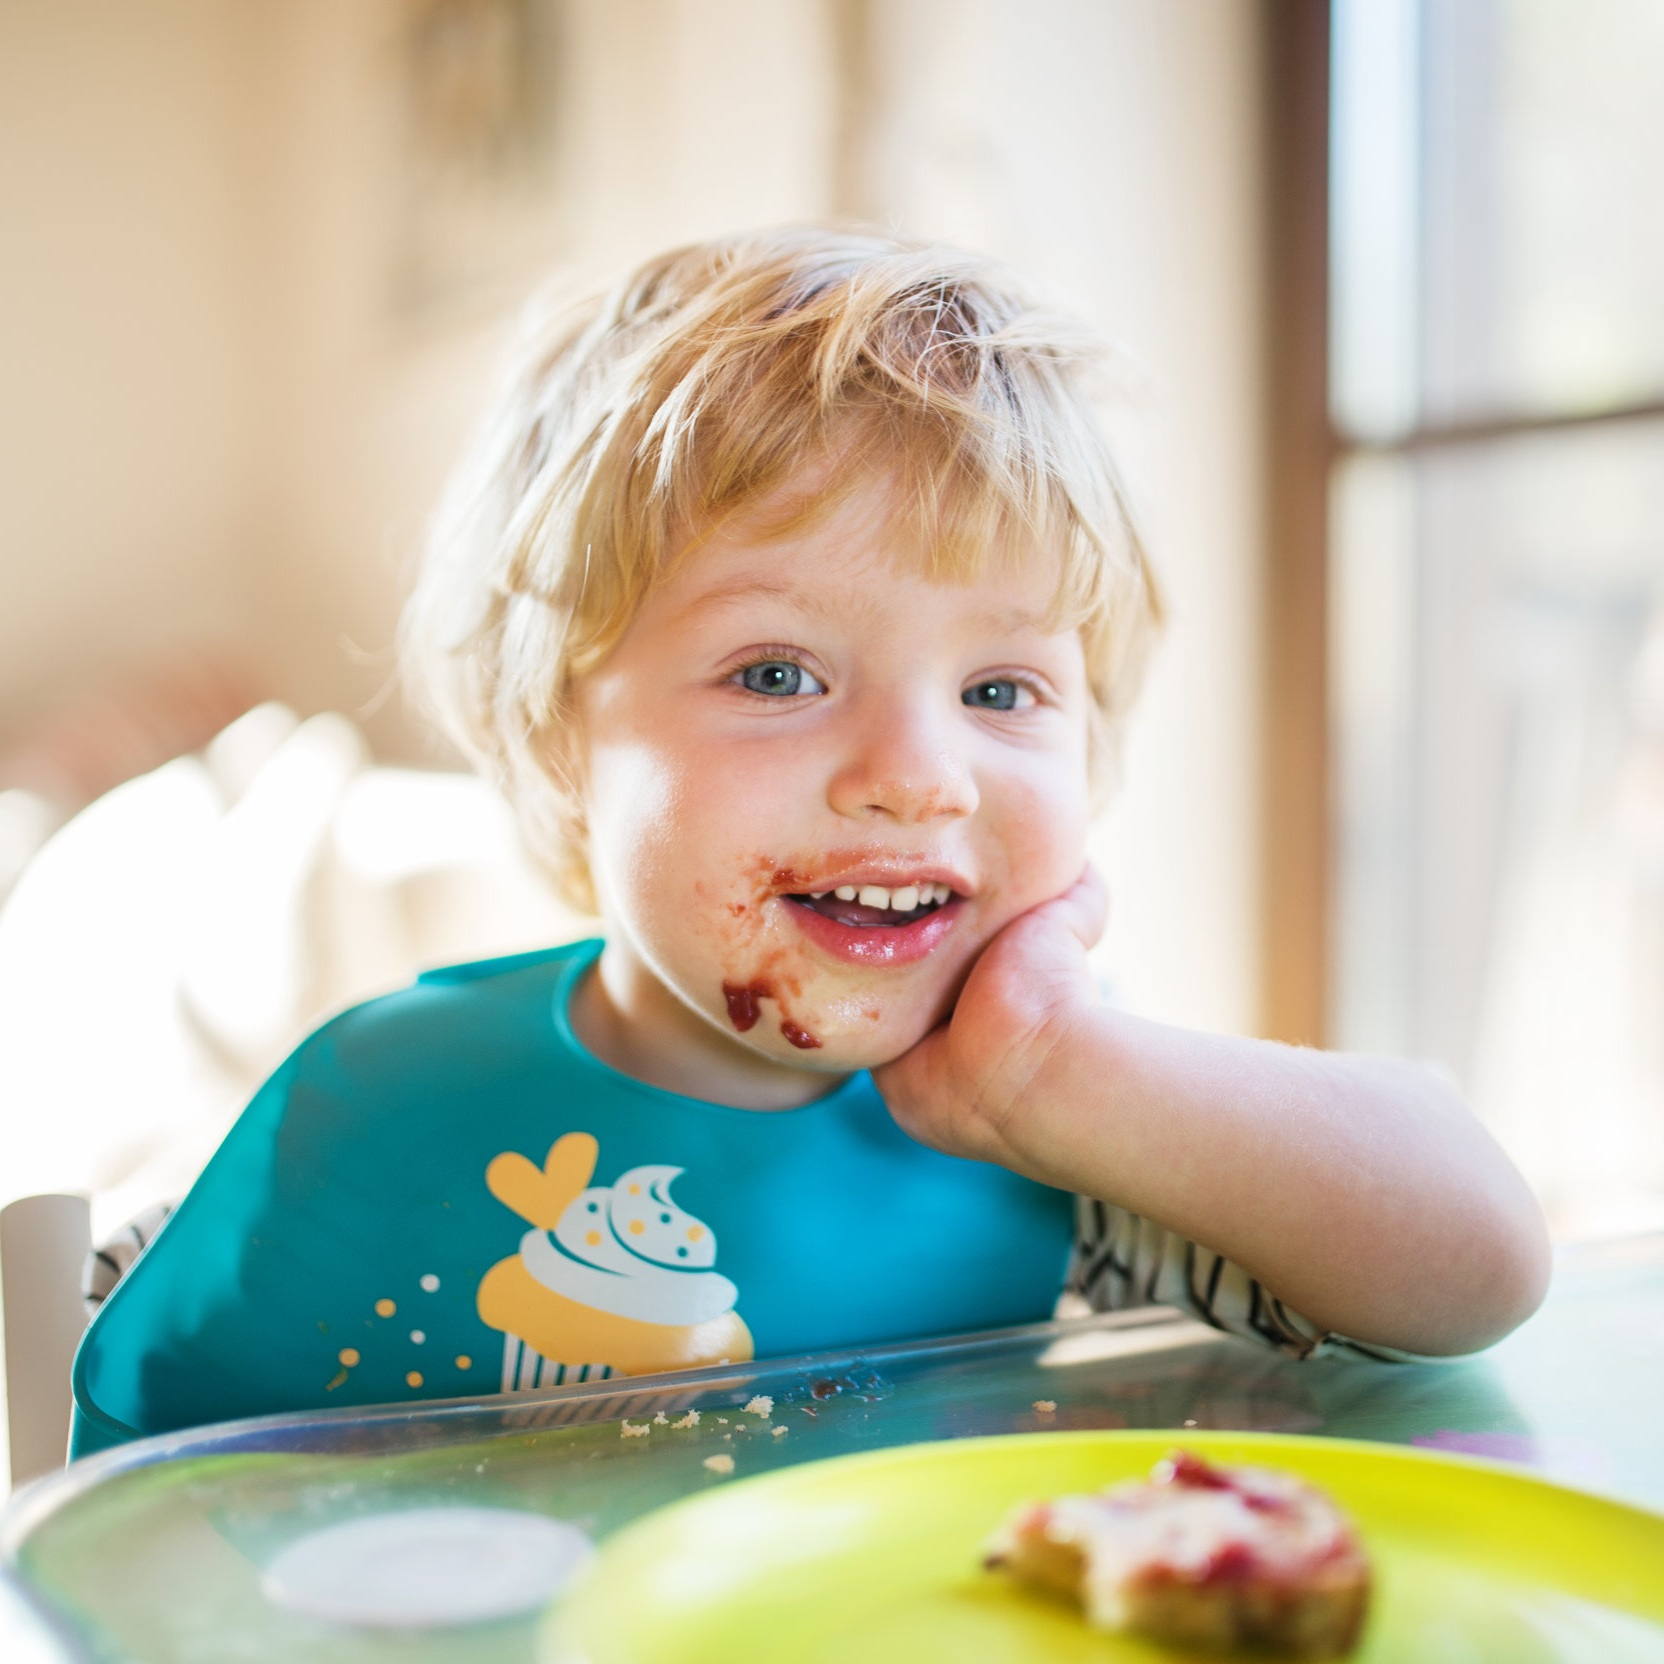 a-toddler-boy-eating-at-home-PGZ9M57+%281%29.jpg